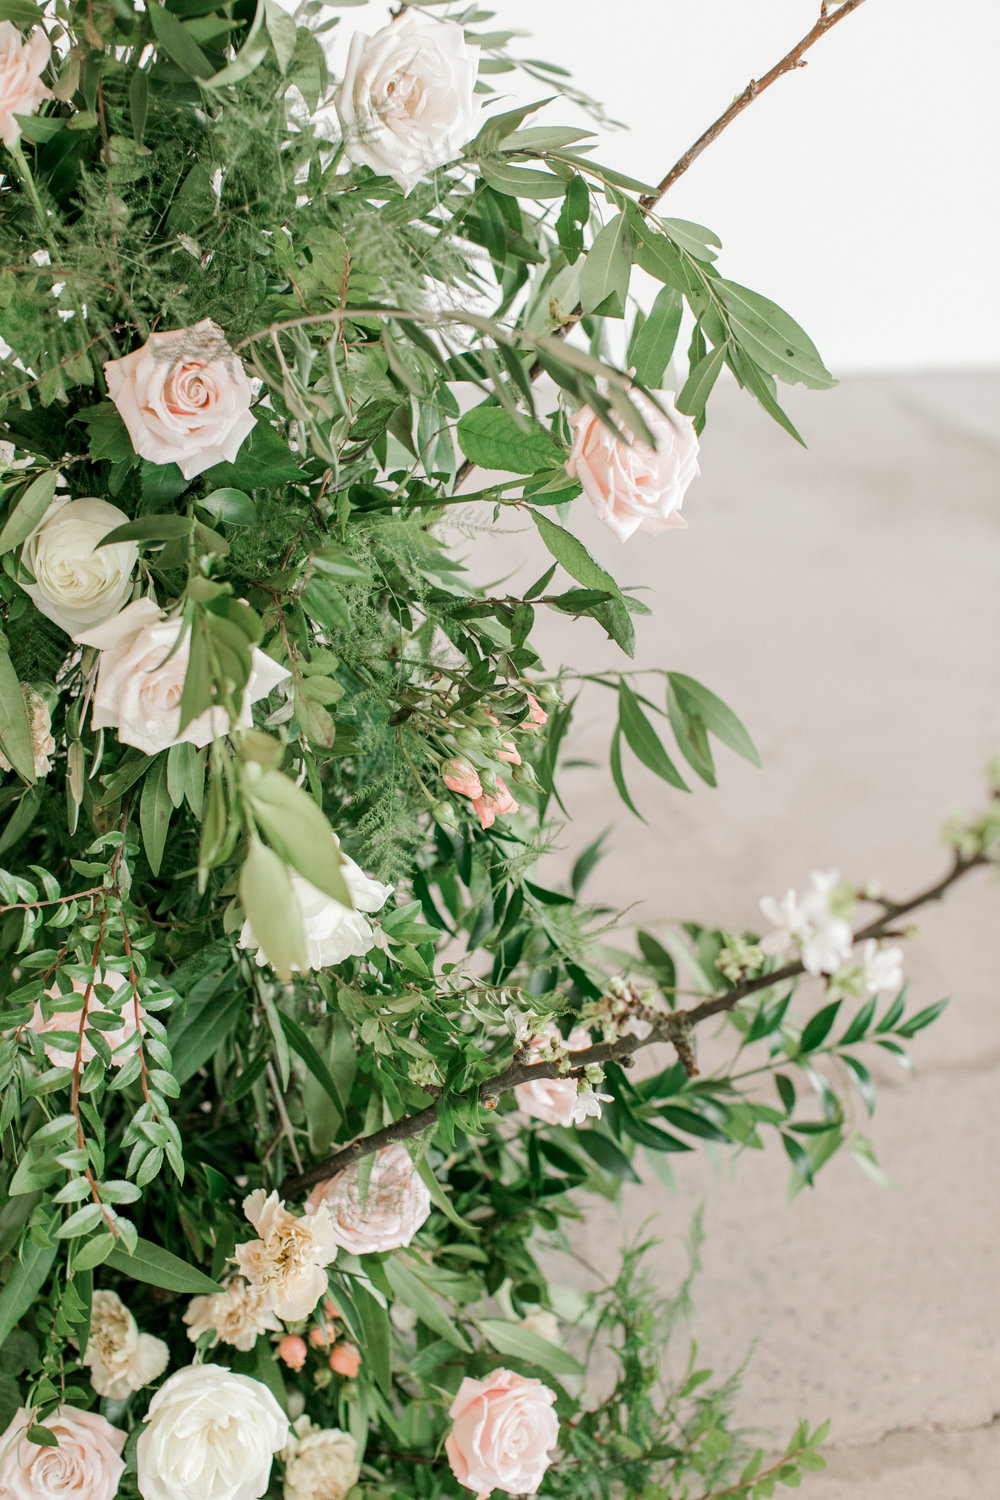 A Sweet Cherry Blossom Inspired Styled Shoot featured on Wedding Chicks- Konsider It Done- AZ Arizona Wedding & Event Planner, Designer, Coordinator Planning in Scottsdale, Phoenix, Paradise Valley, Tempe, Gilbert, Mesa, Chandler, Tucson, Sedona